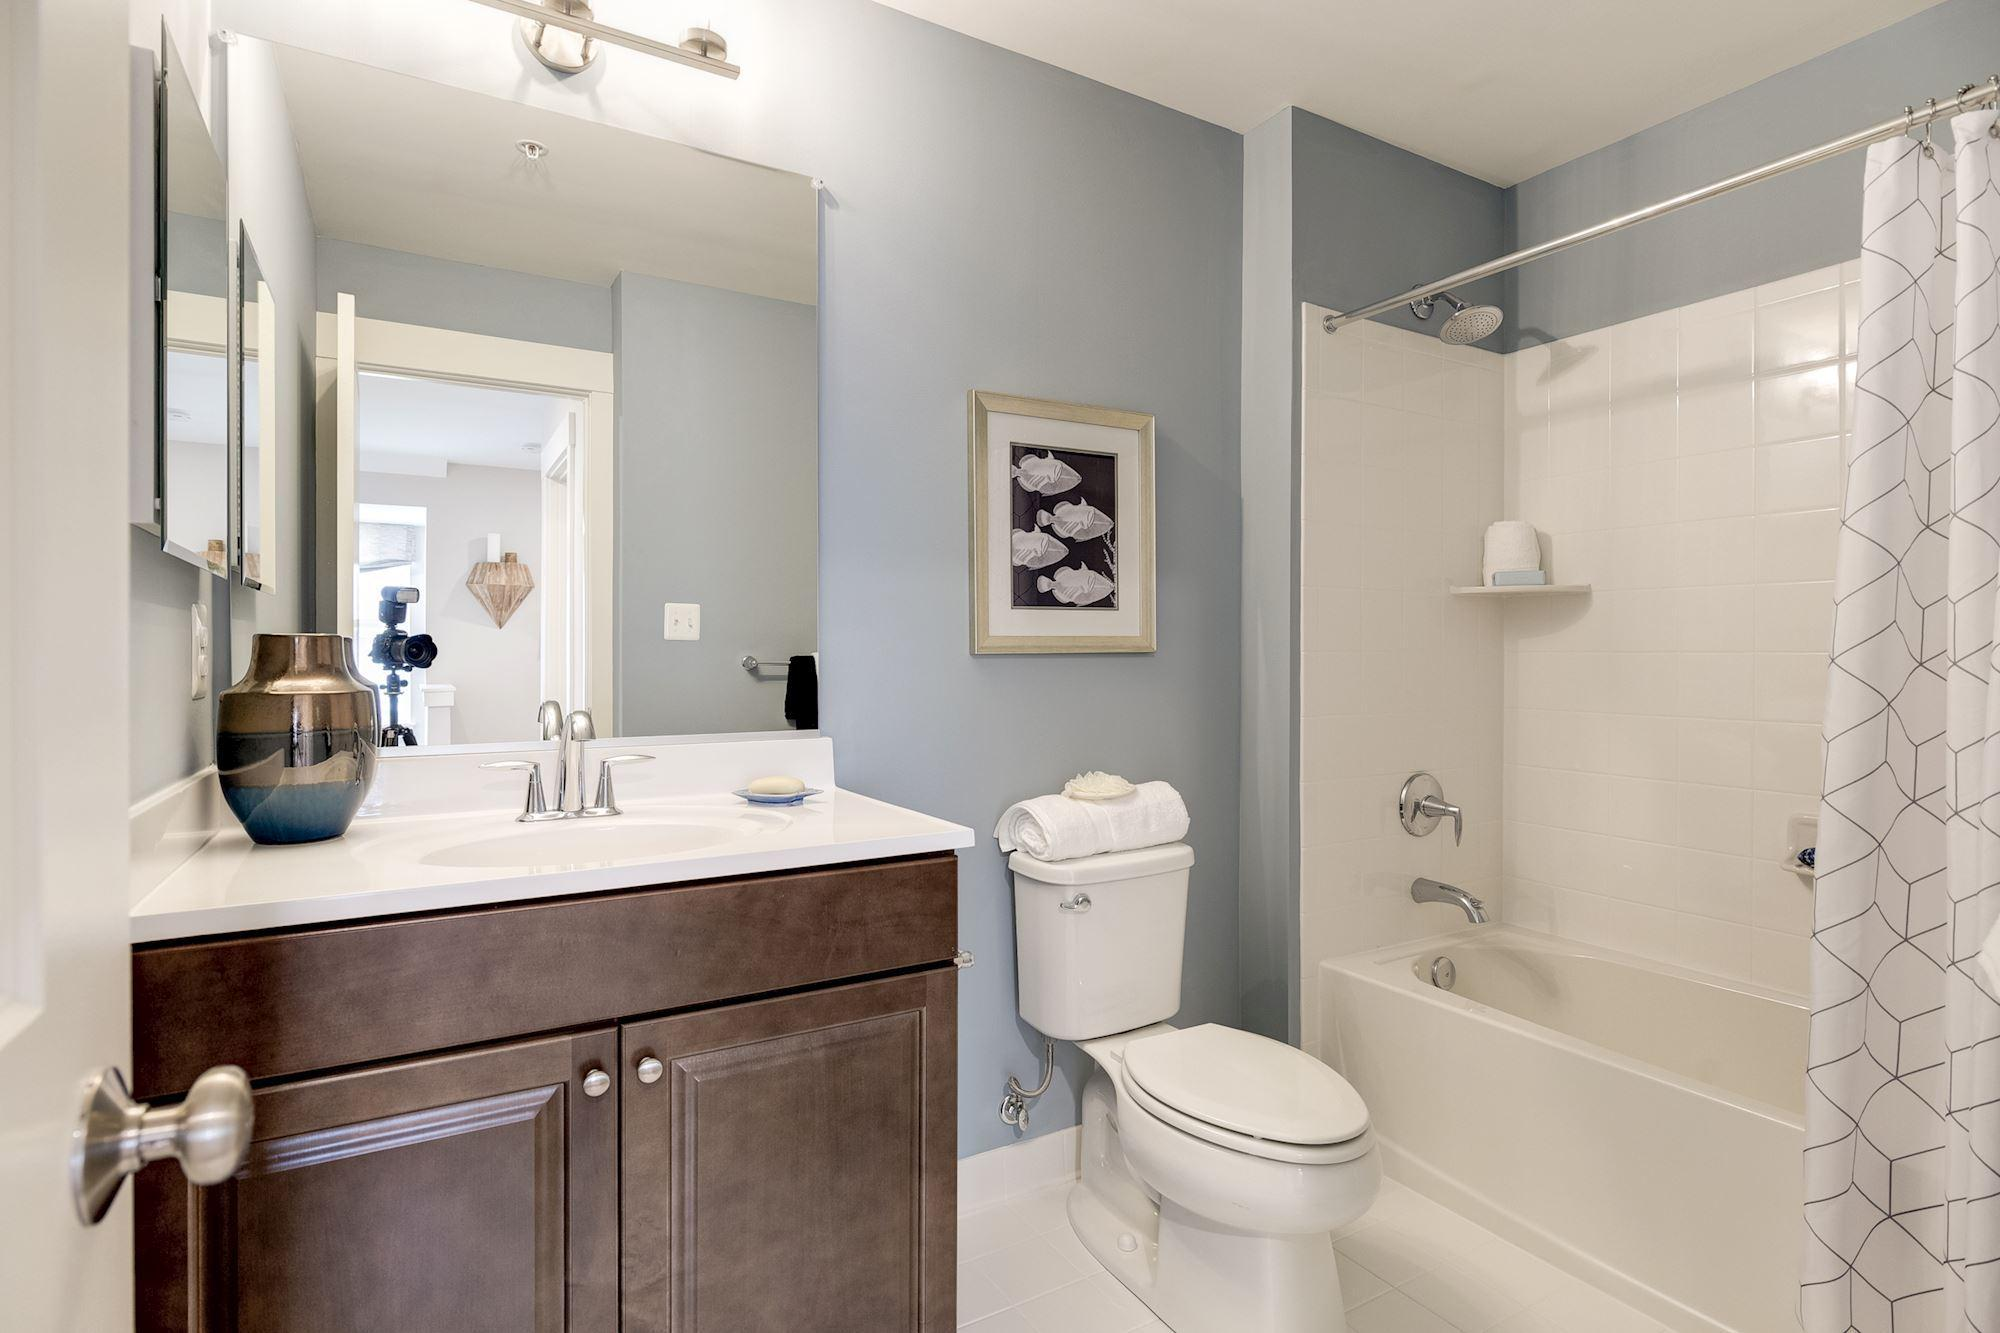 Bathroom featured in the Townhome-Interior Unit By Baldwin Homes Inc. in Eastern Shore, MD